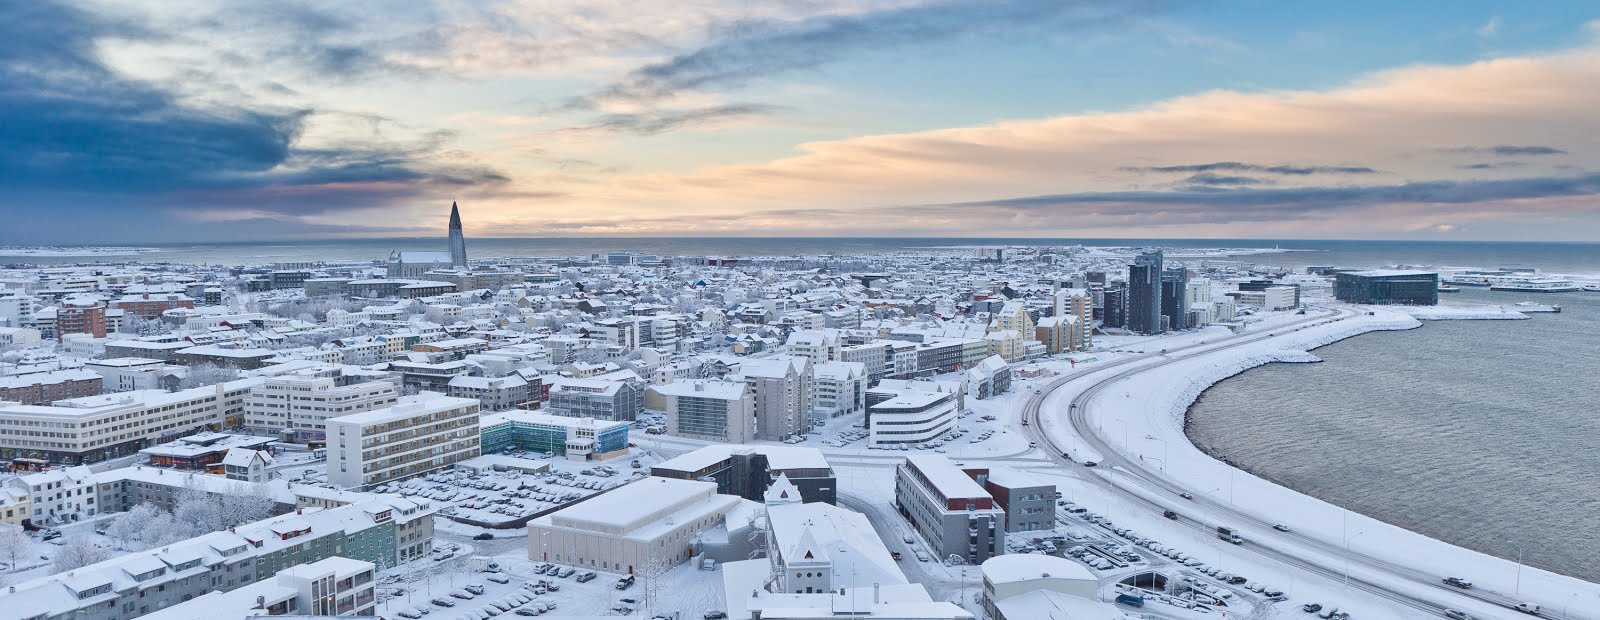 Snow covered white Reykjavik